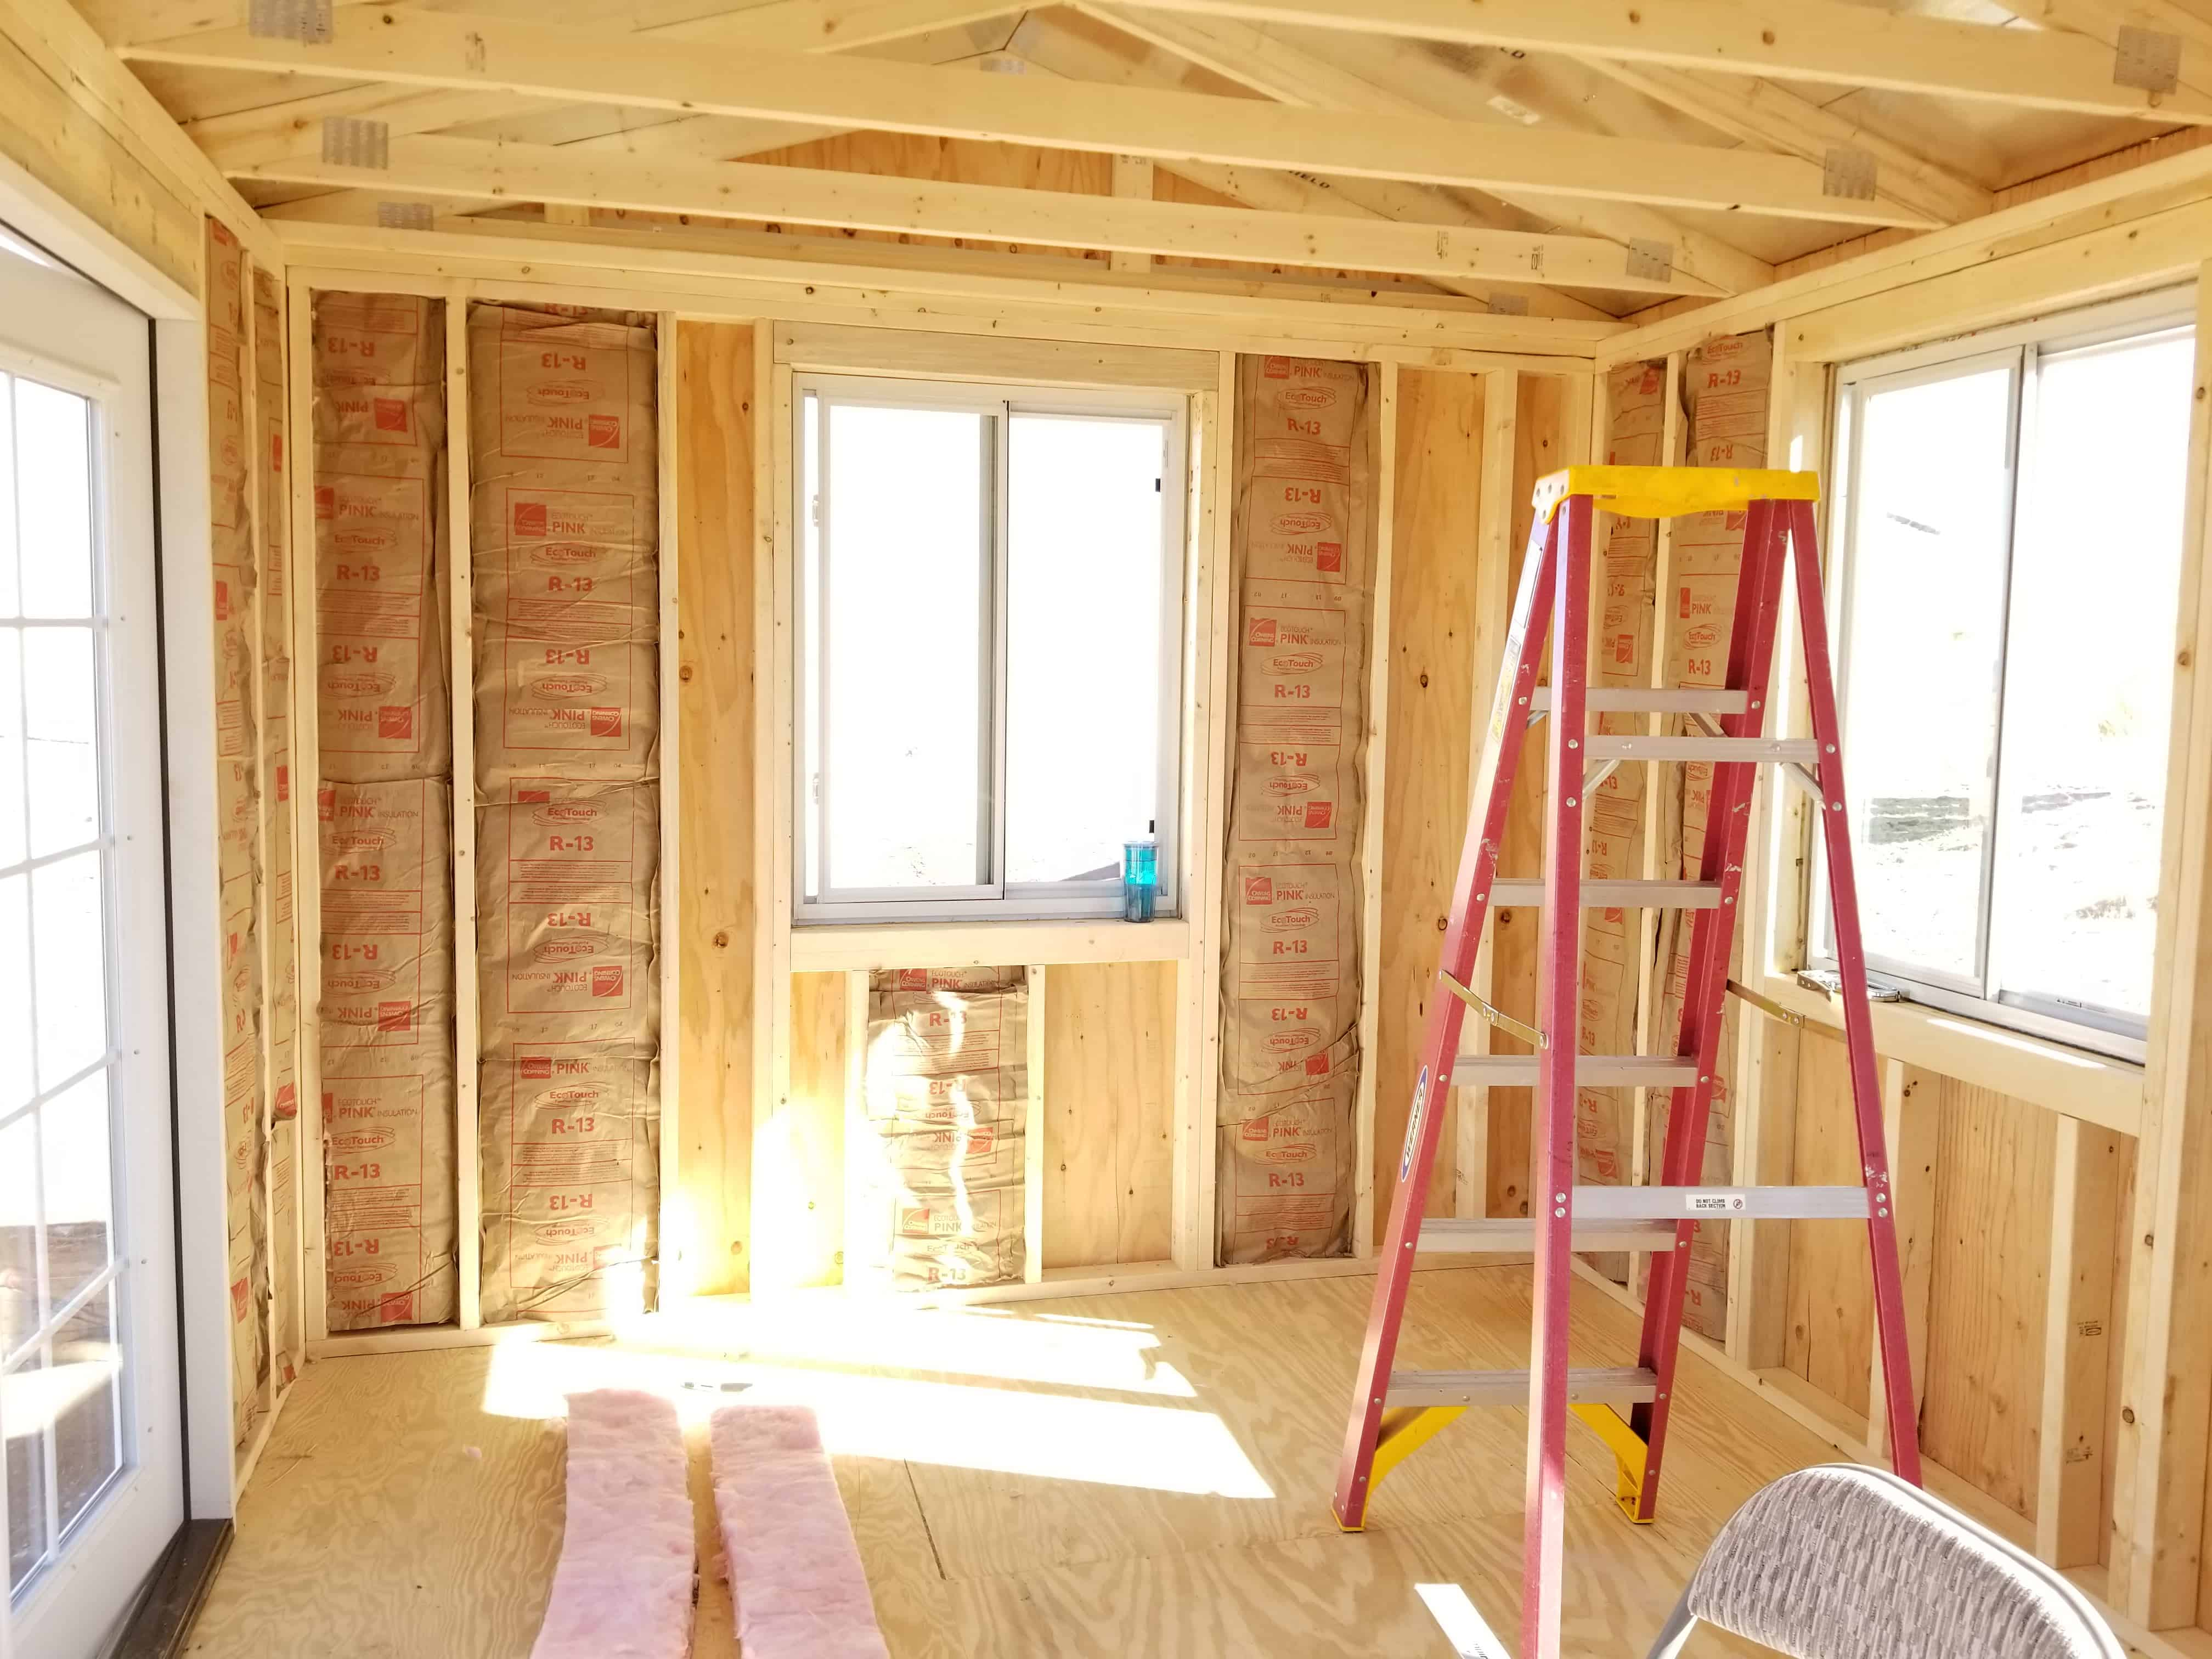 Insulation installed in she-shed